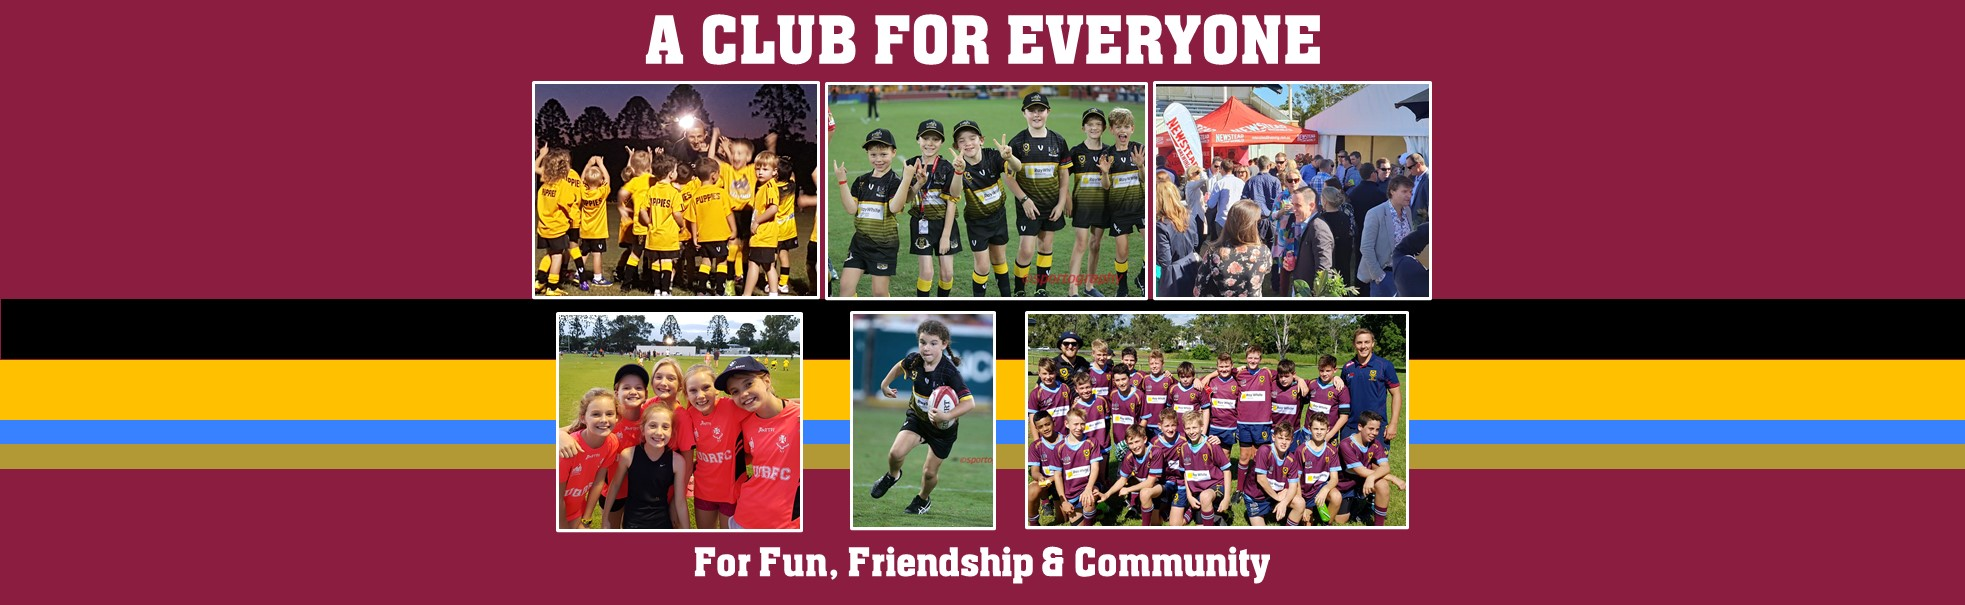 FB Banner A Club For All